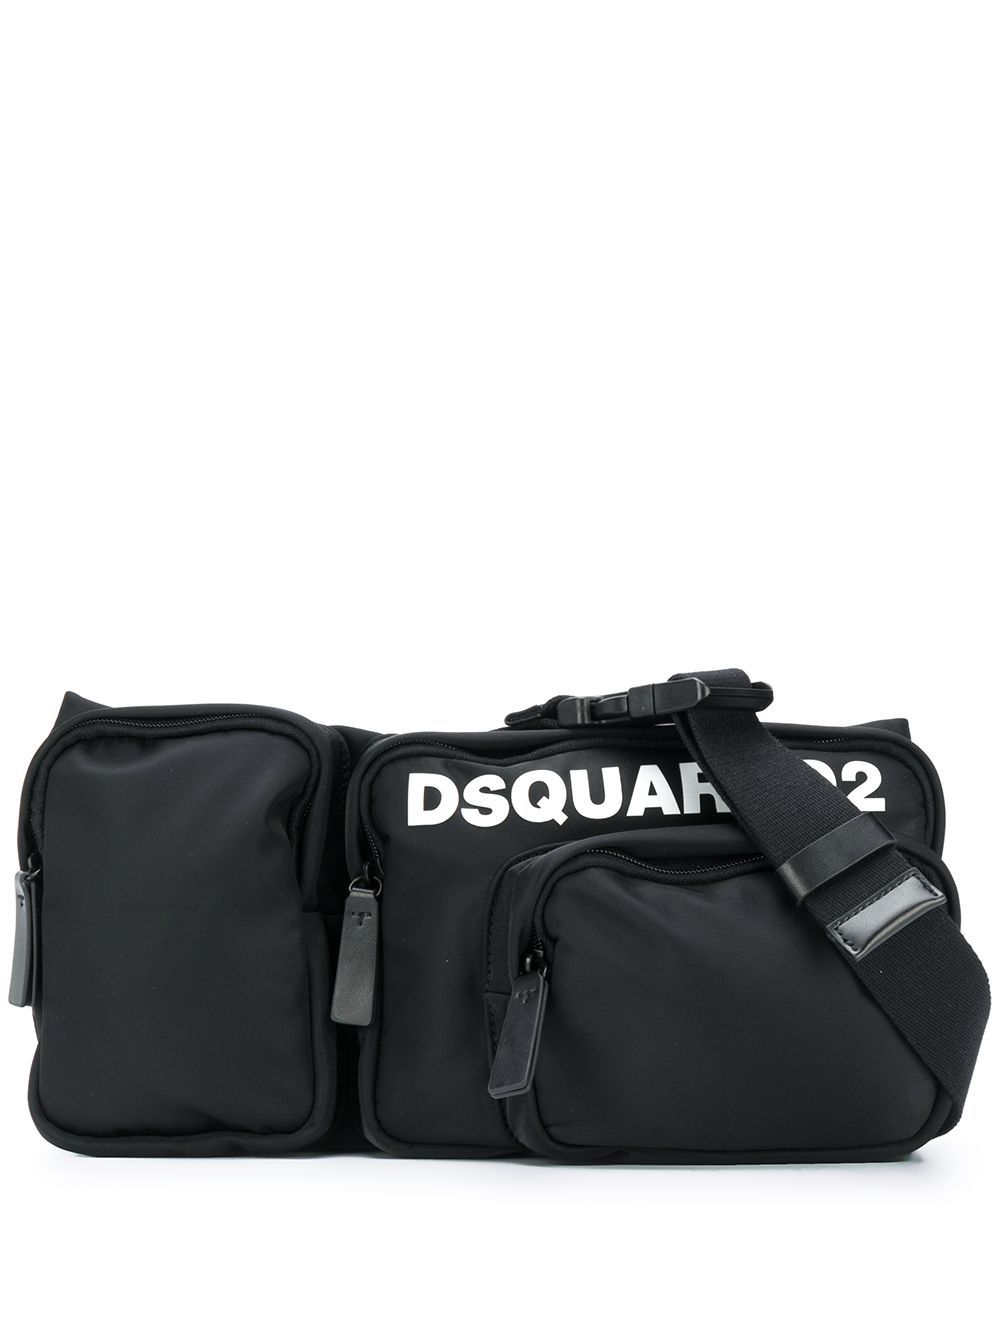 DSQUARED2 Multi-Pocket Belt Bag Black